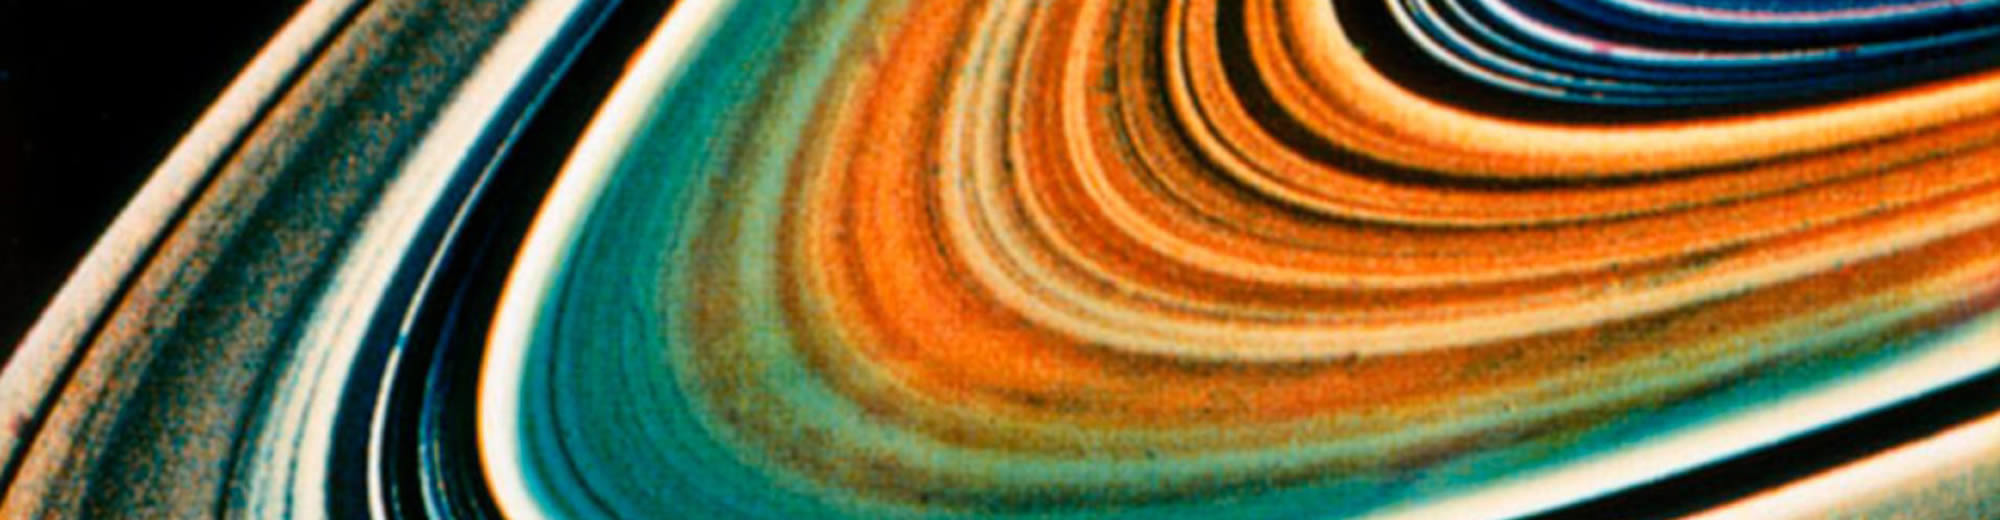 close-up image of Saturn's rings